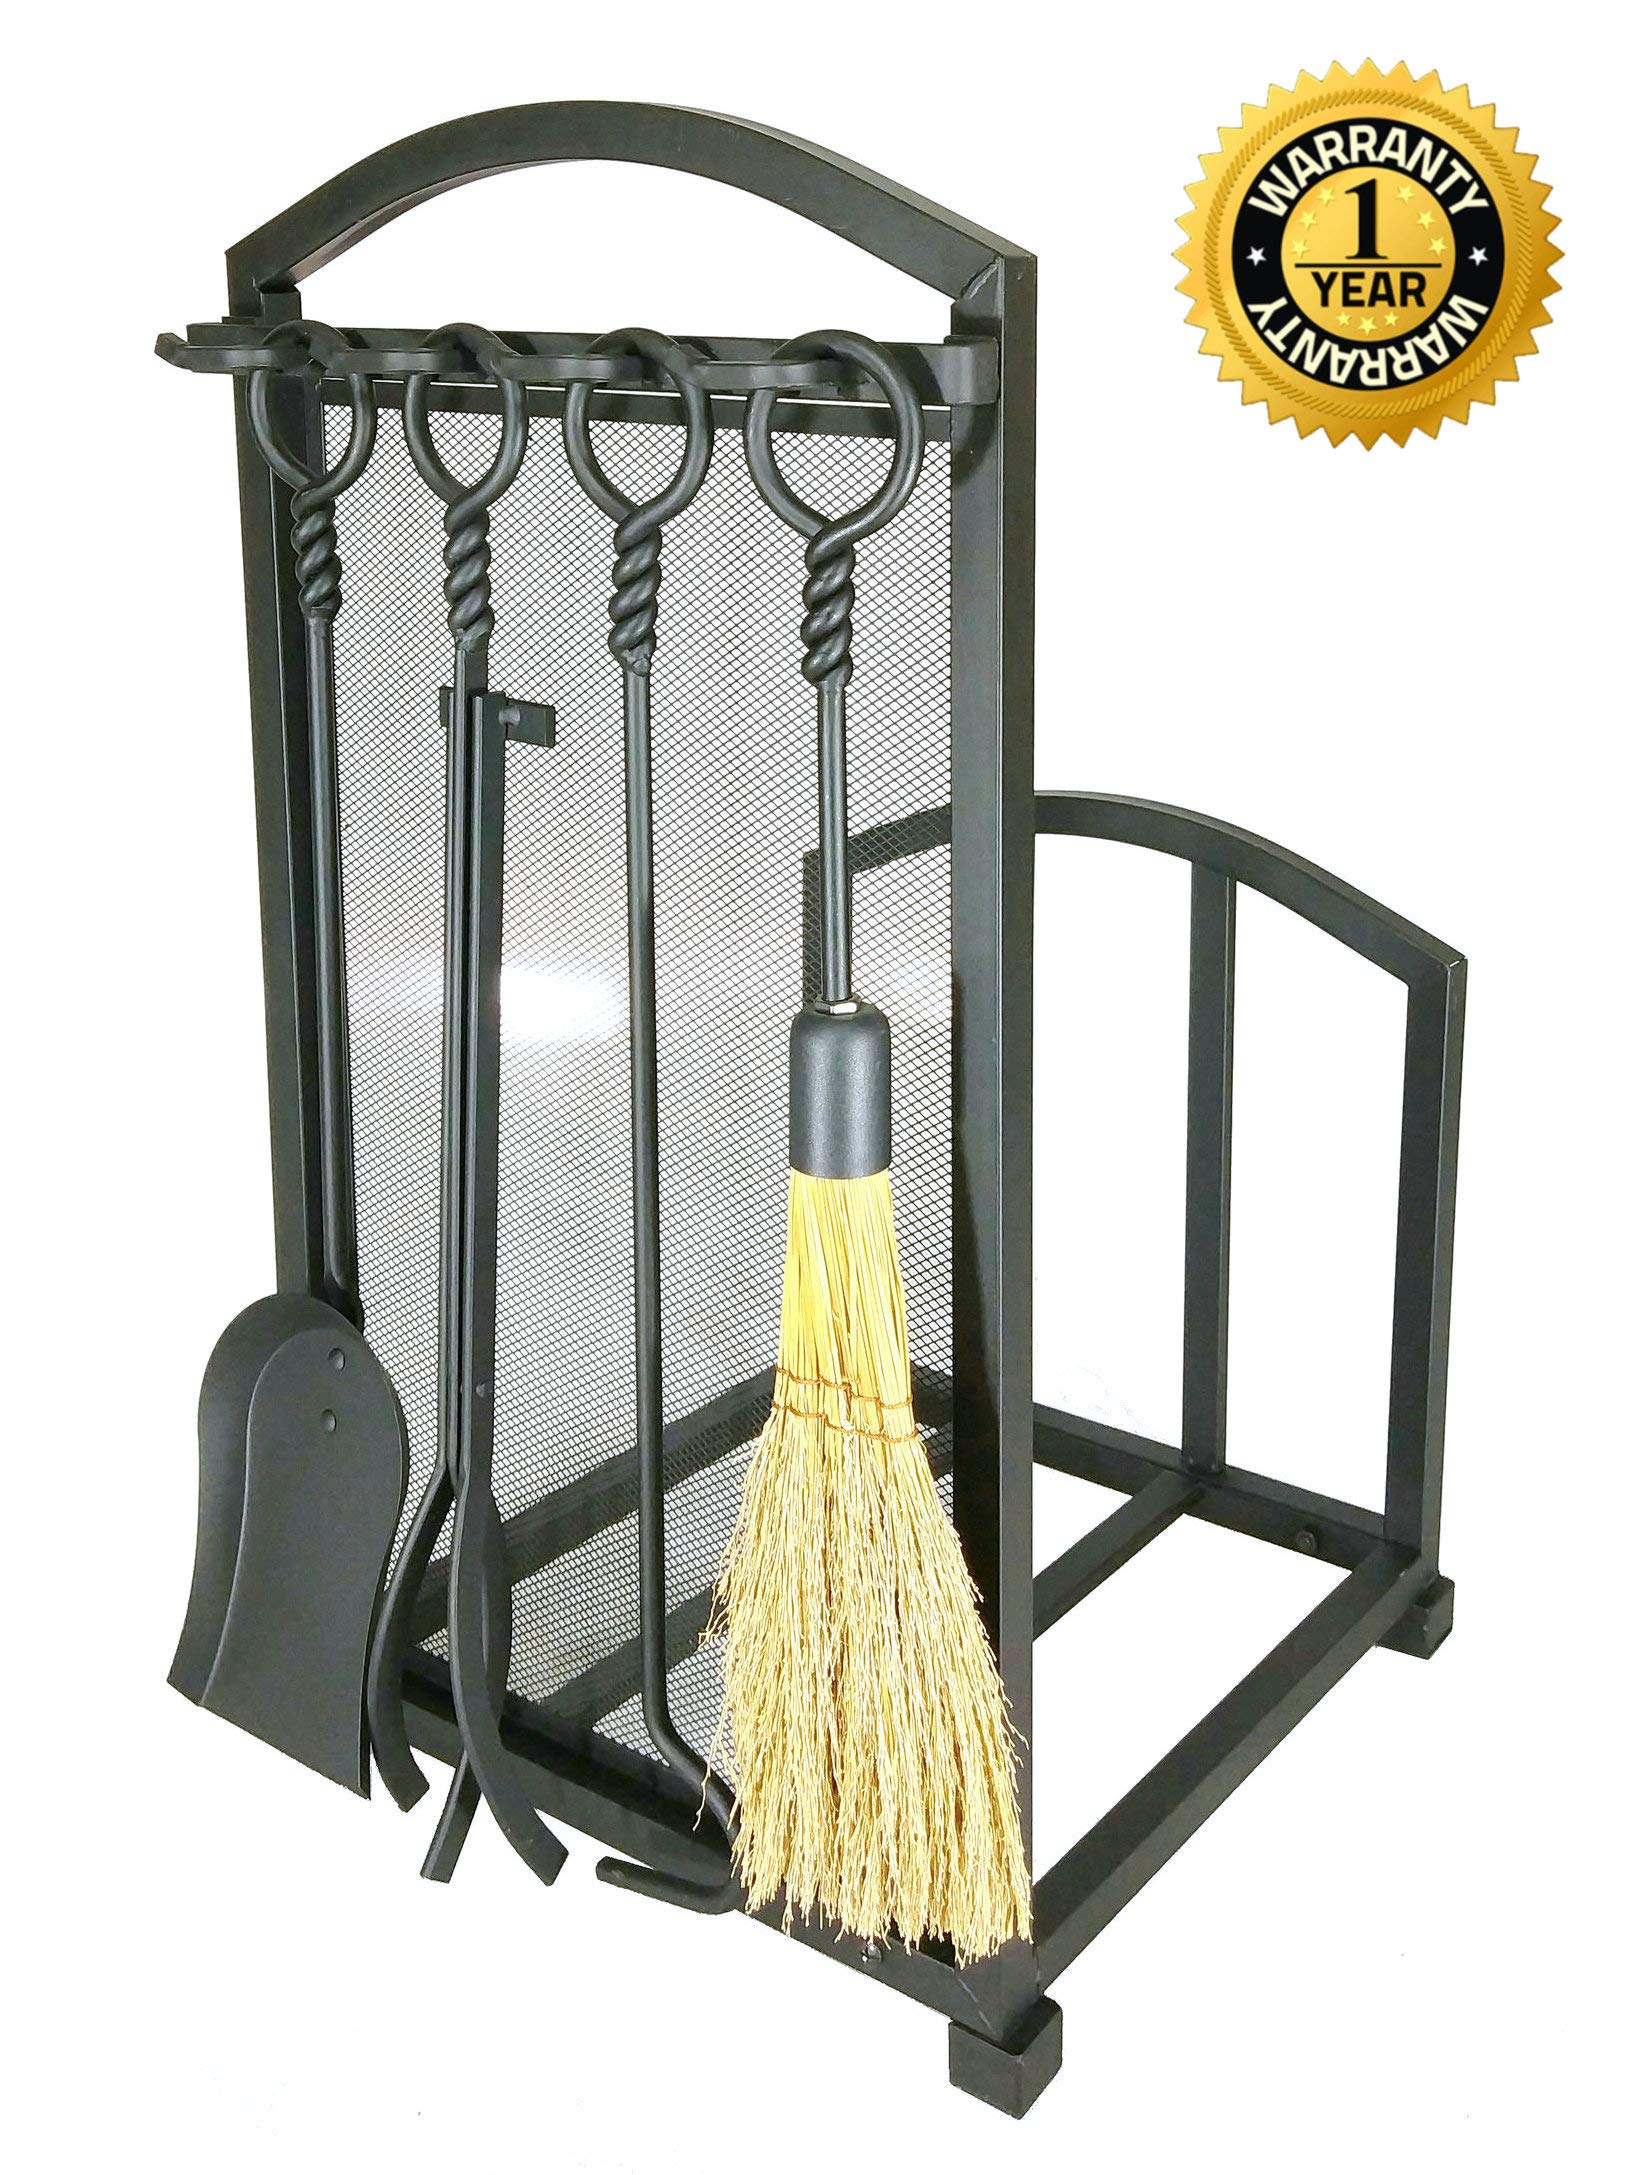 Lizh Metalwork Fireplace Log Holder with Fireplace Tools, Wrought Iron Indoor Stove Accessories Firewood Rack Holder Lumber Storage Stacking Log Holder Log Bin with Tongs Shovel Poker and Brush by Lizh Metalwork